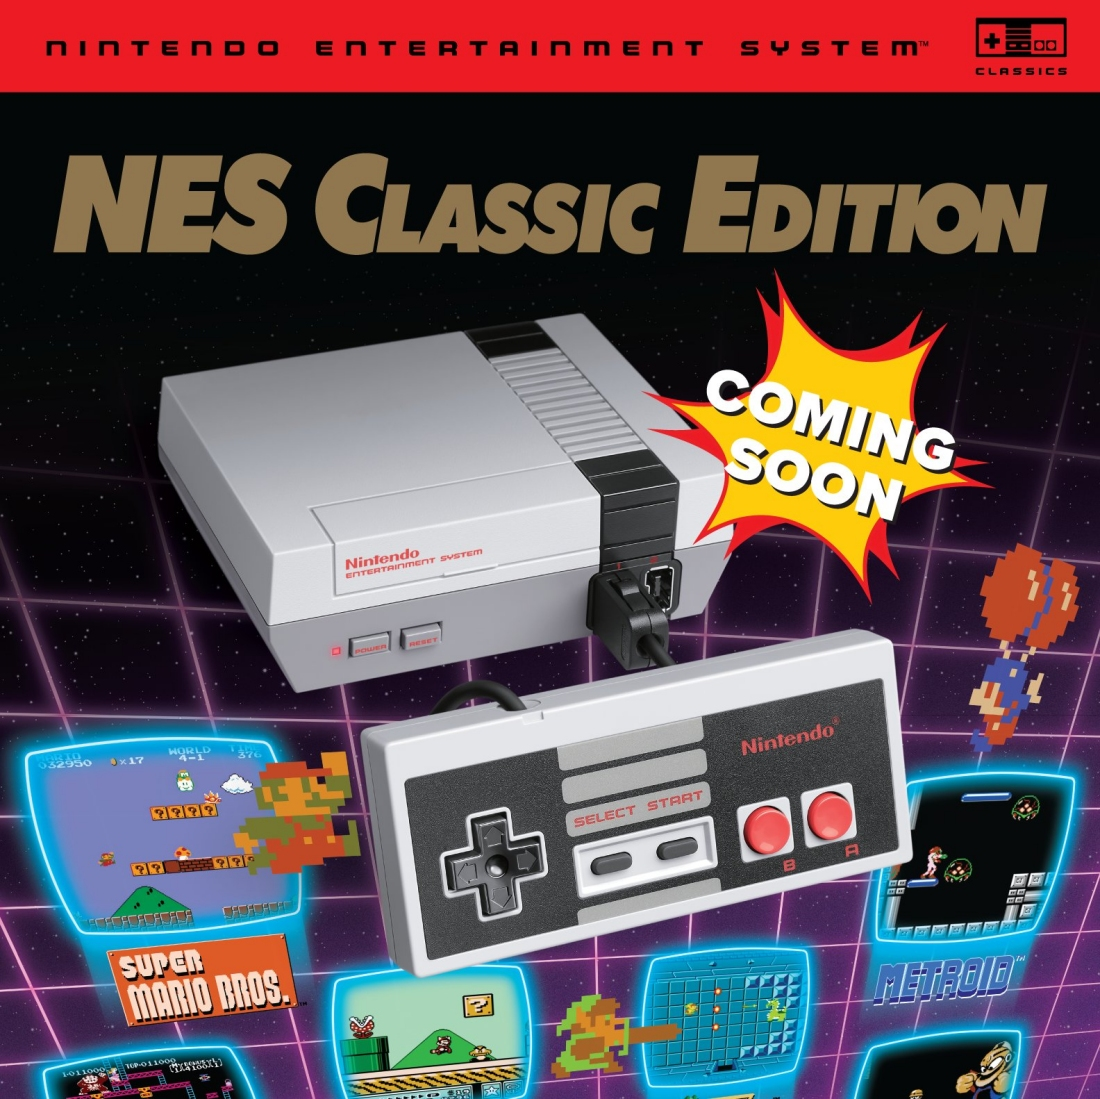 The NES Classic is back in stores  Here's how to get it - TechSpot